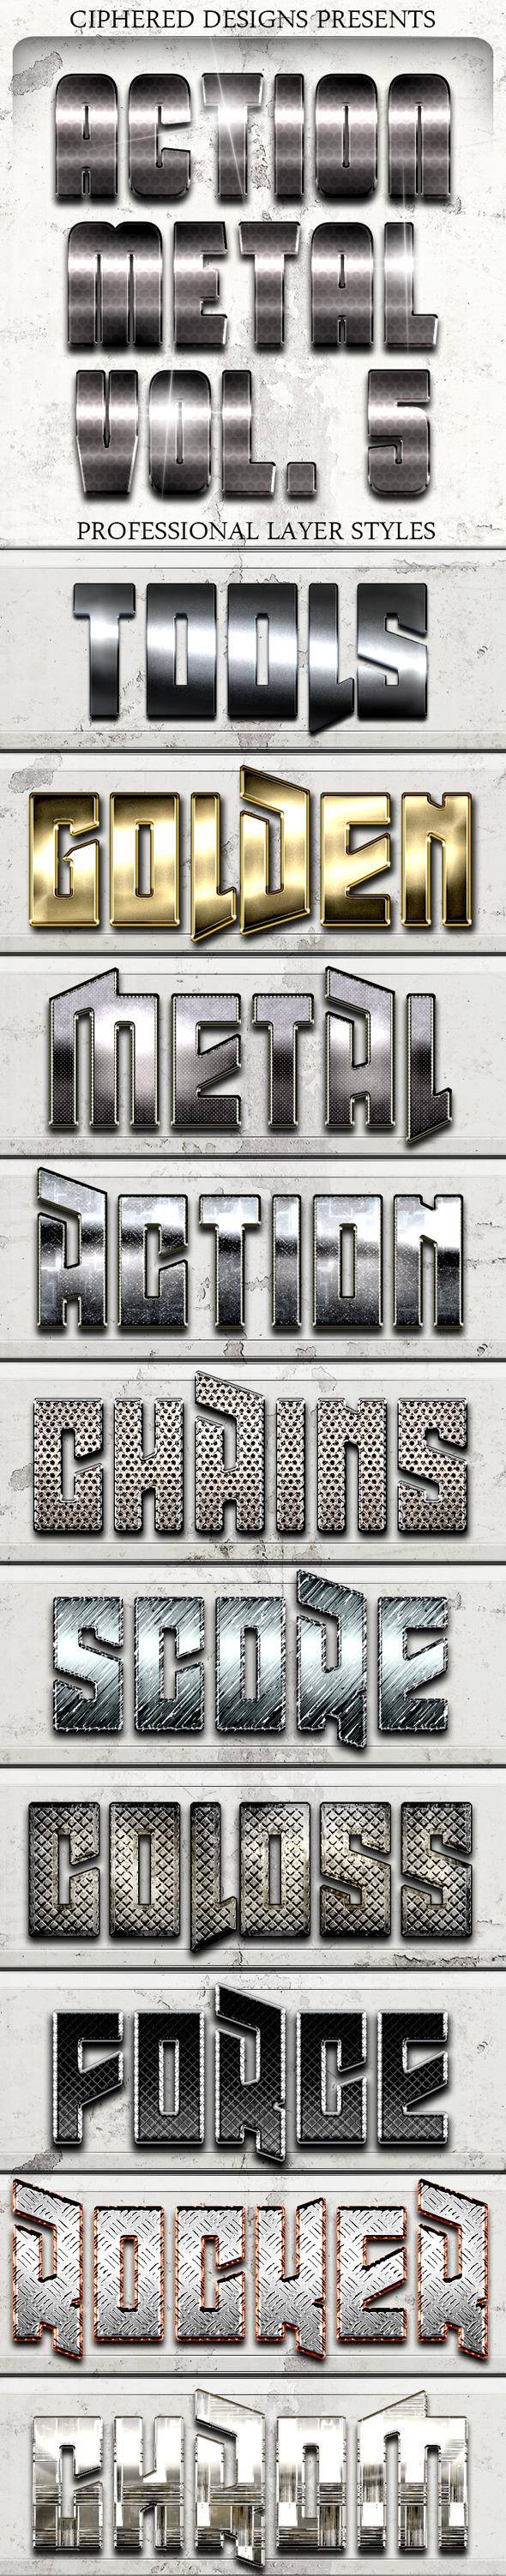 Action Metal 05 - Text Effects - Text Effects Styles